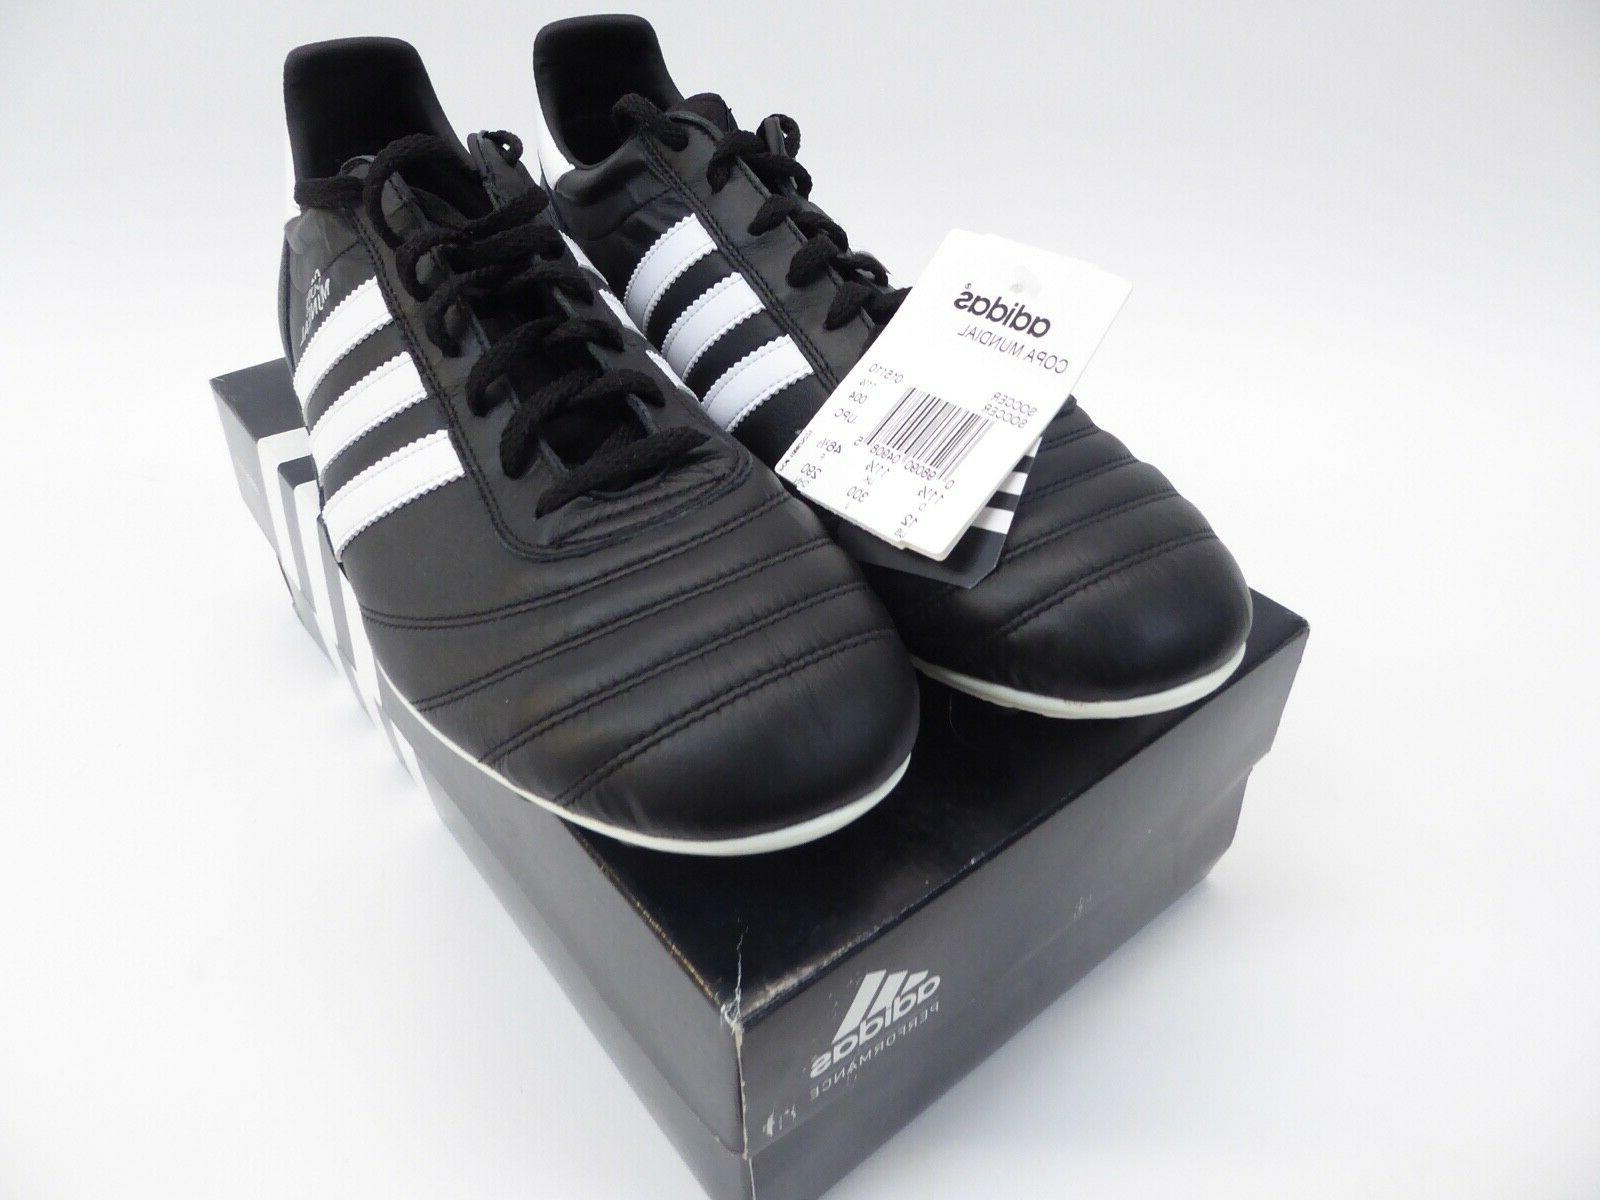 copa mundial soccer cleats new in box